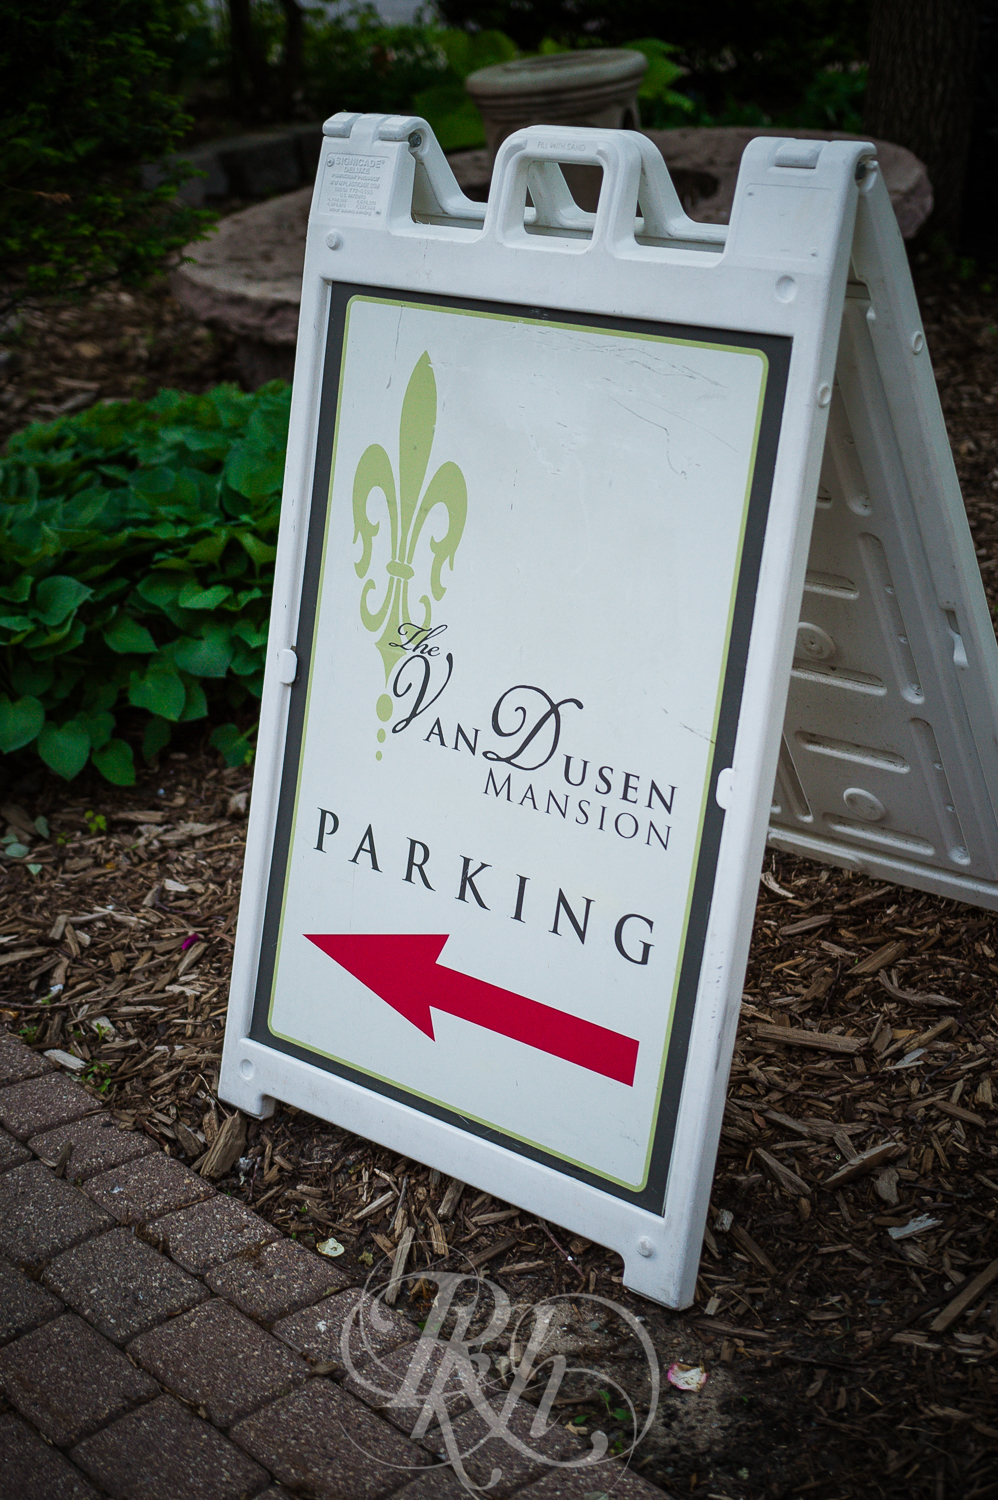 Megan & Gavin - Minnesota Wedding Photography - Van Dusen Mansion - RKH Ikmages -7.jpg